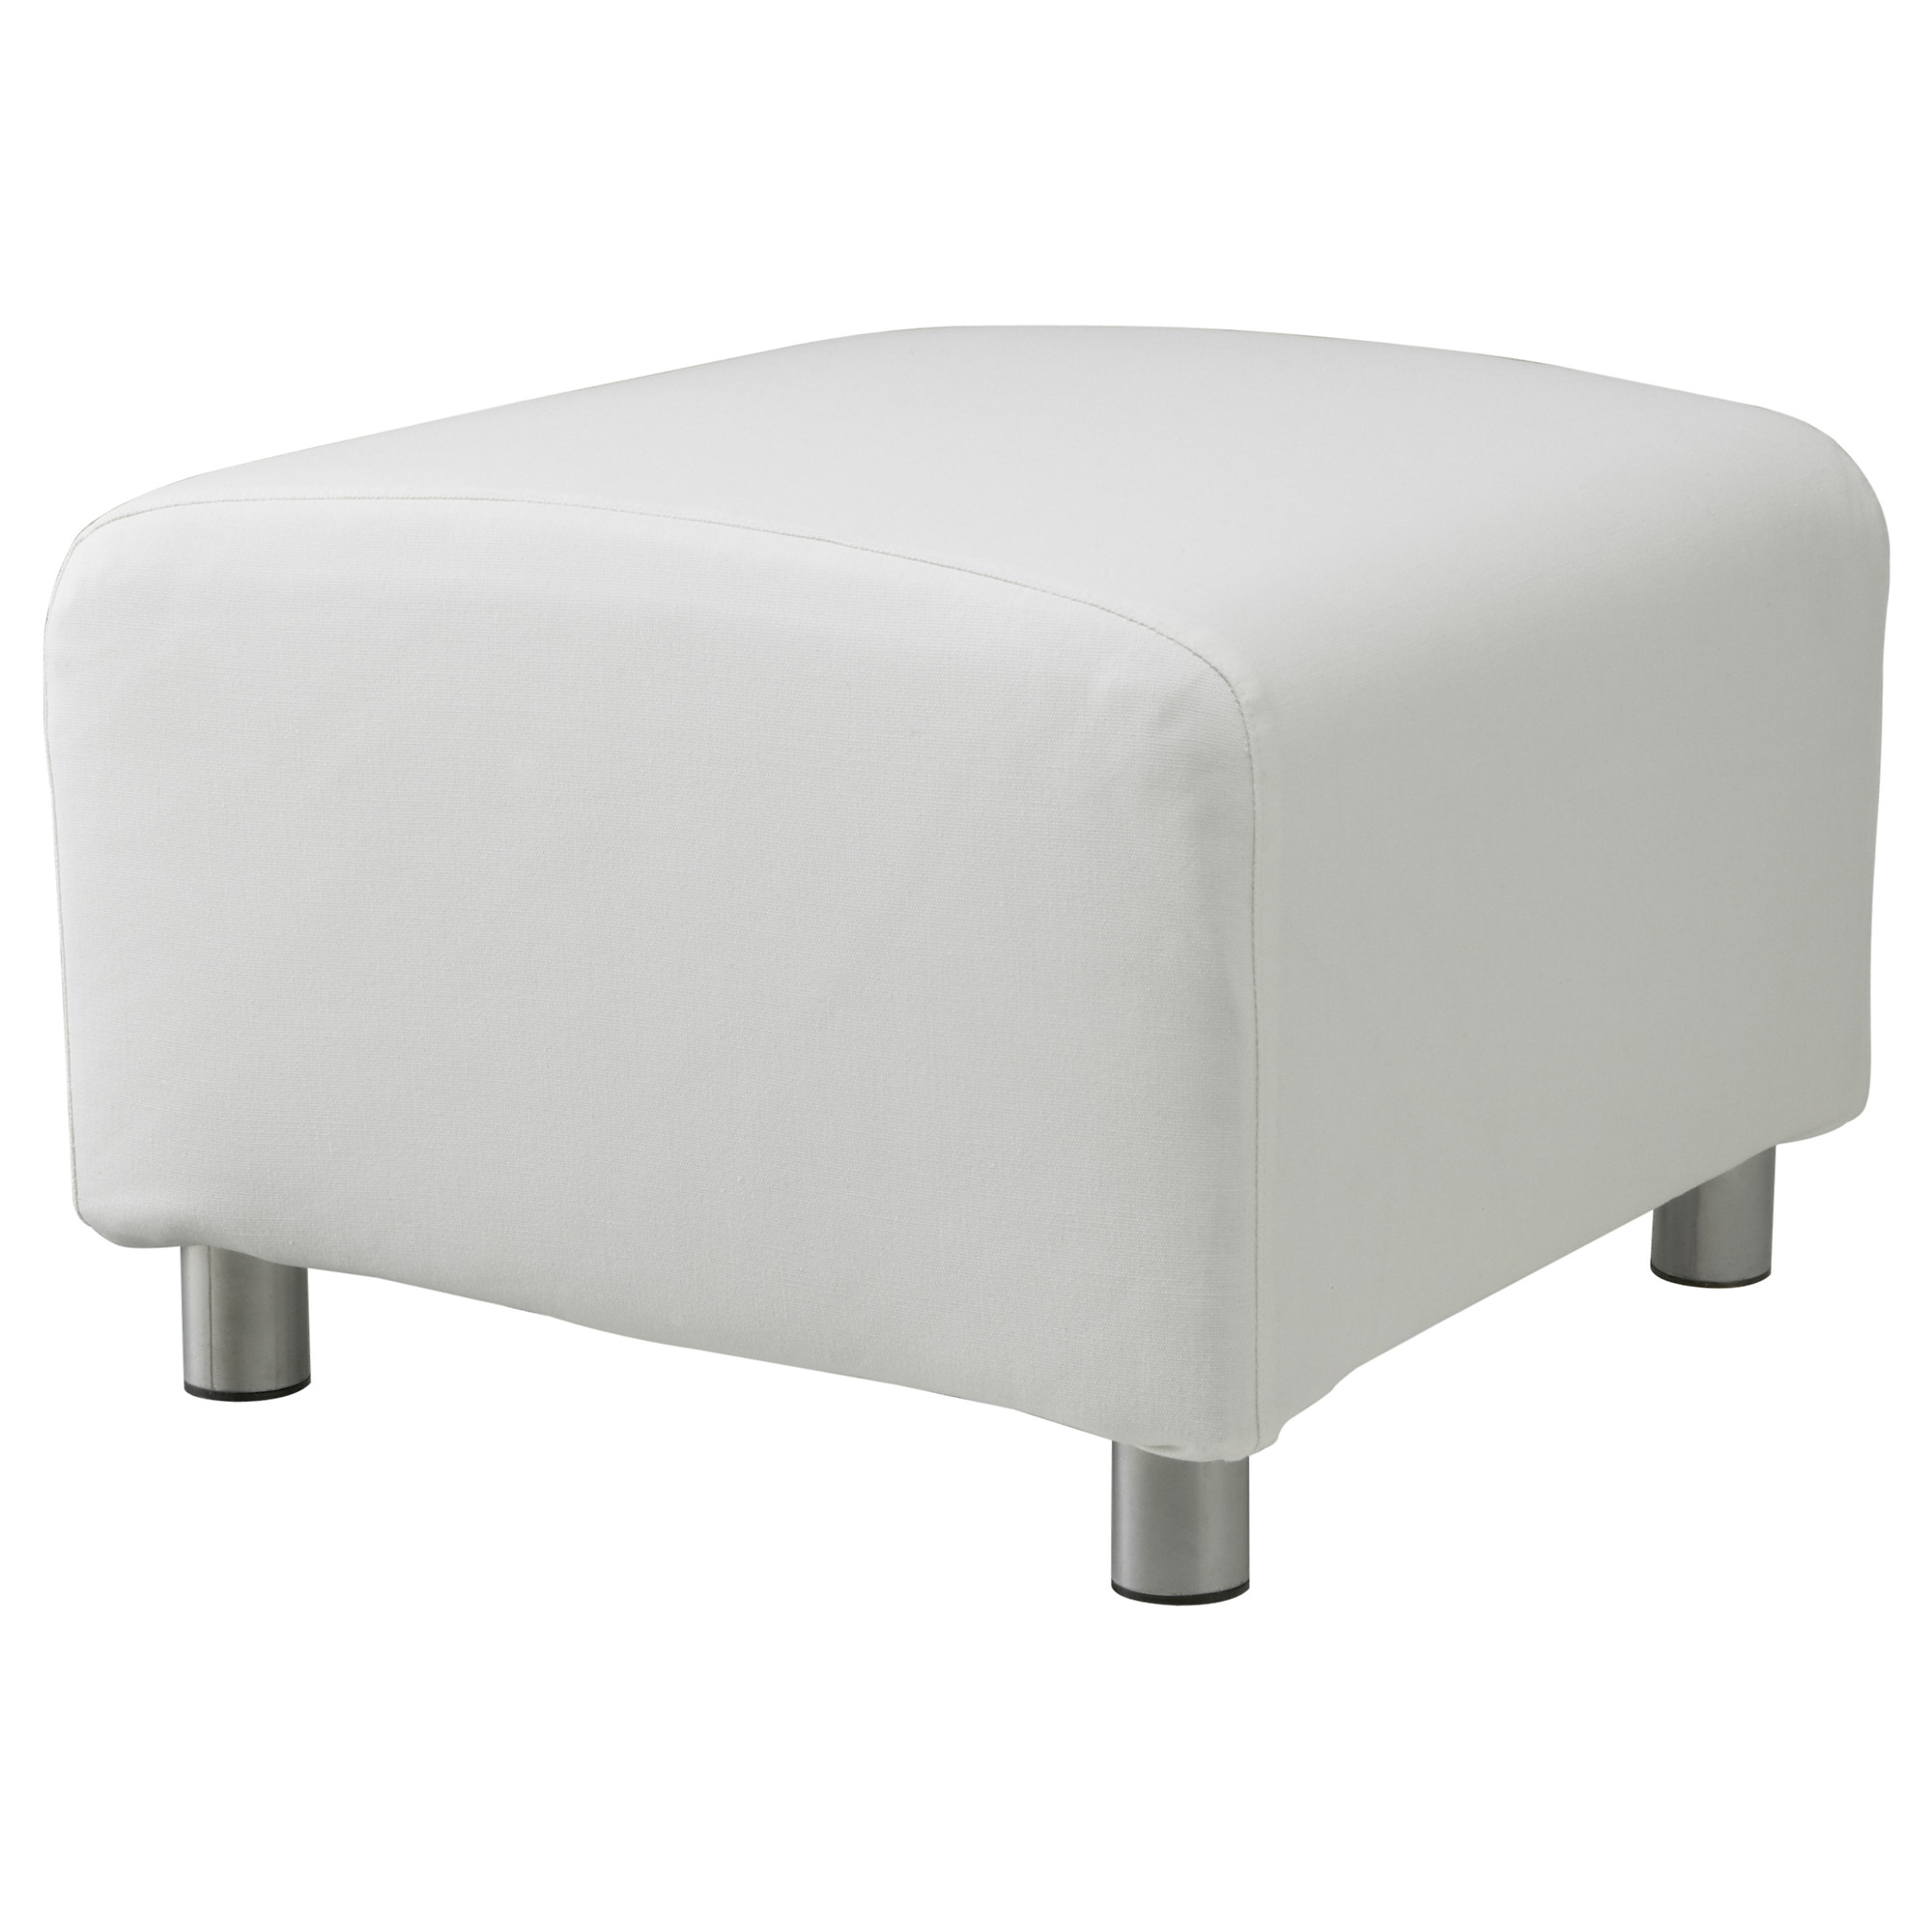 Pouffe Ikea Details About White Cotton Custom Slip Cover For Ikea Klippan Footstool Sofa Cover Foot Stool